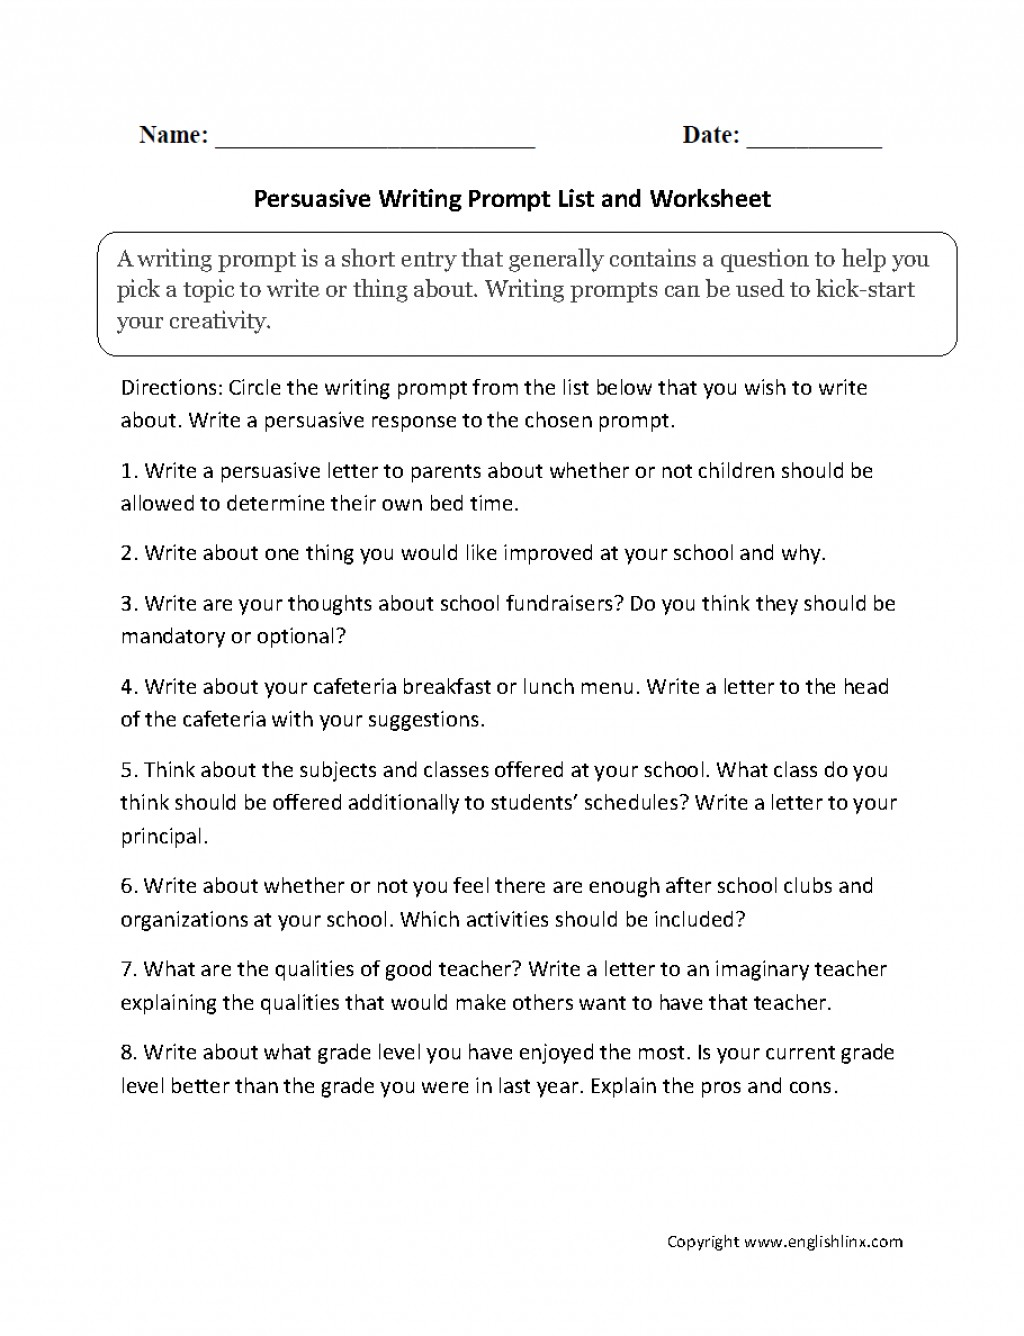 003 Grade Essay Topics Persuasive Writing Prompt List Imposing 7 Narrative Urdu Large